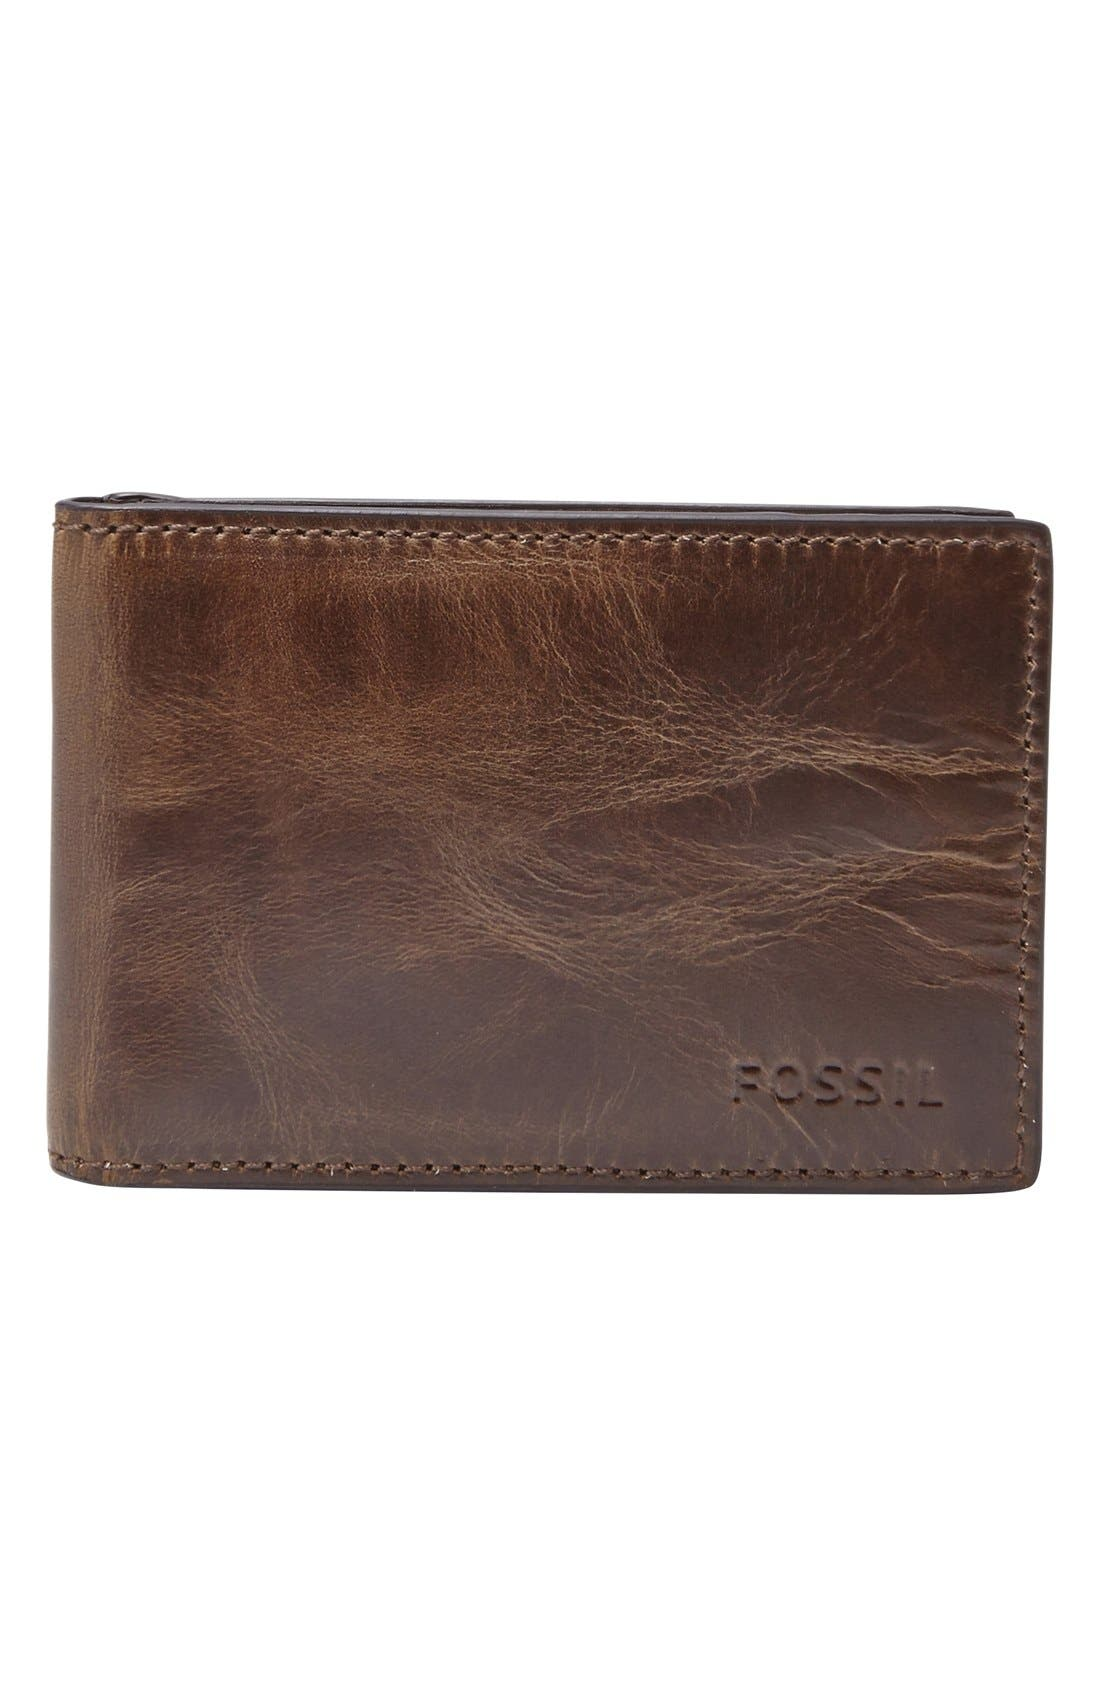 Alternate Image 1 Selected - Fossil Derrick Leather Money Clip Bifold Wallet